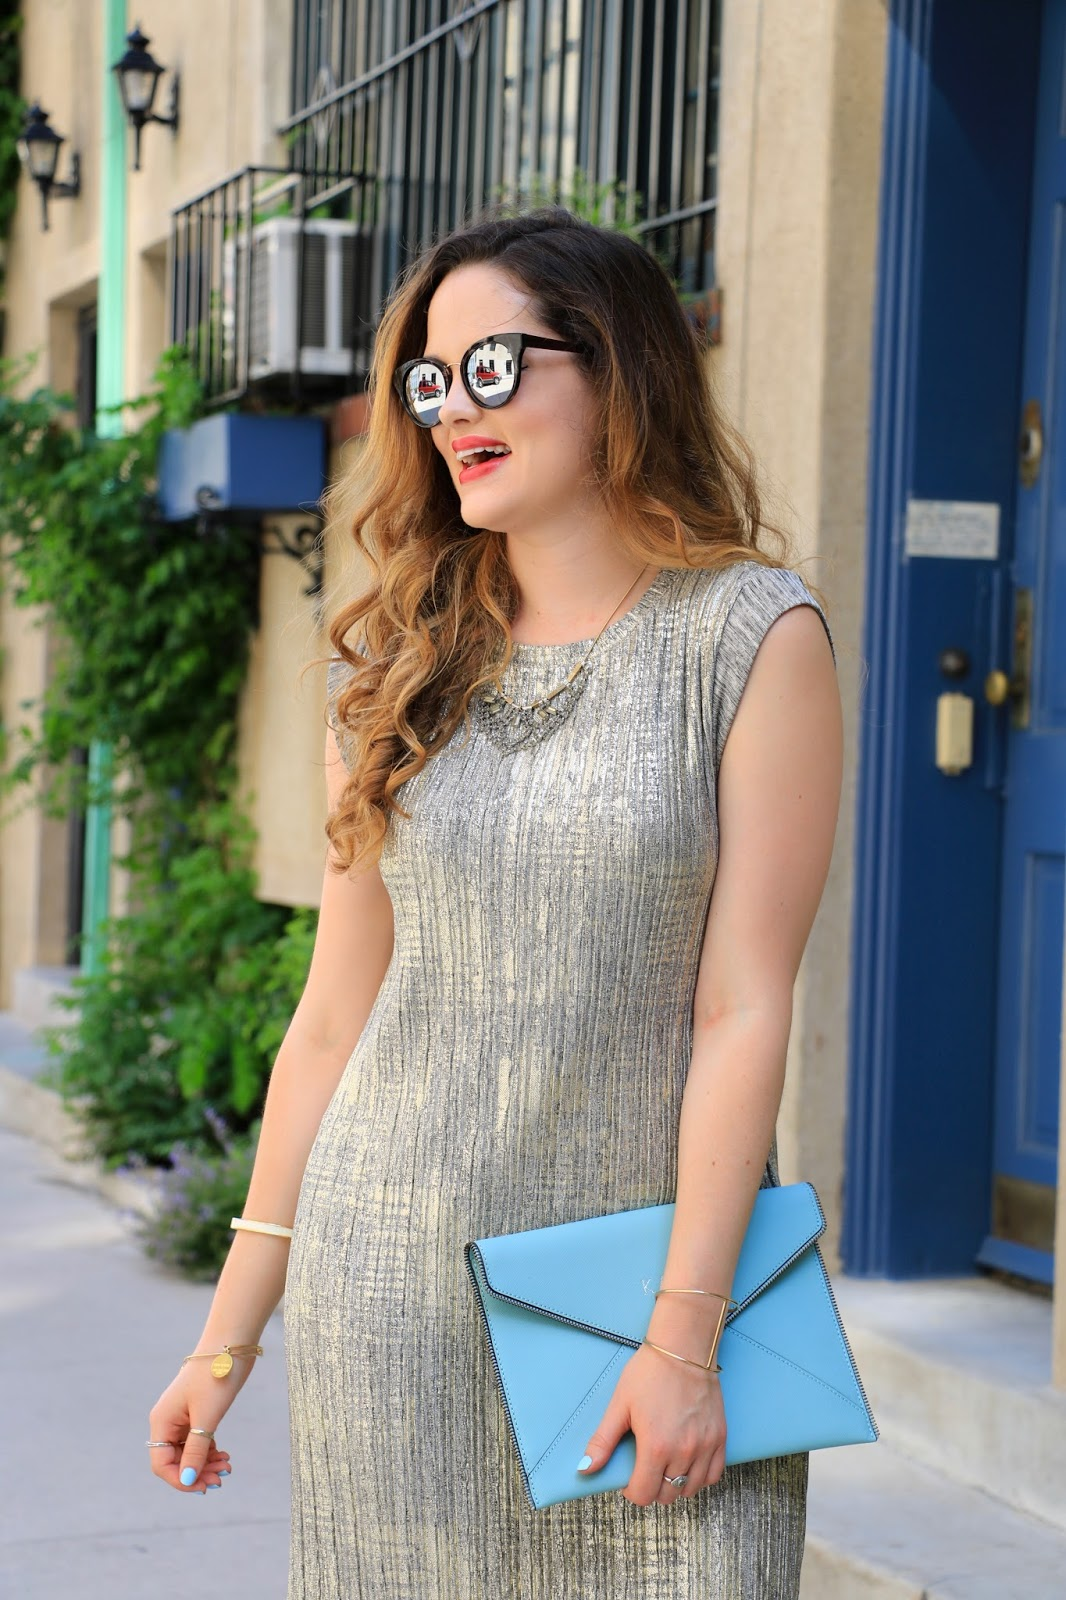 NYC fashion blogger Kathleen Harper of Kat's Fashion Fix wearing gold summer dress